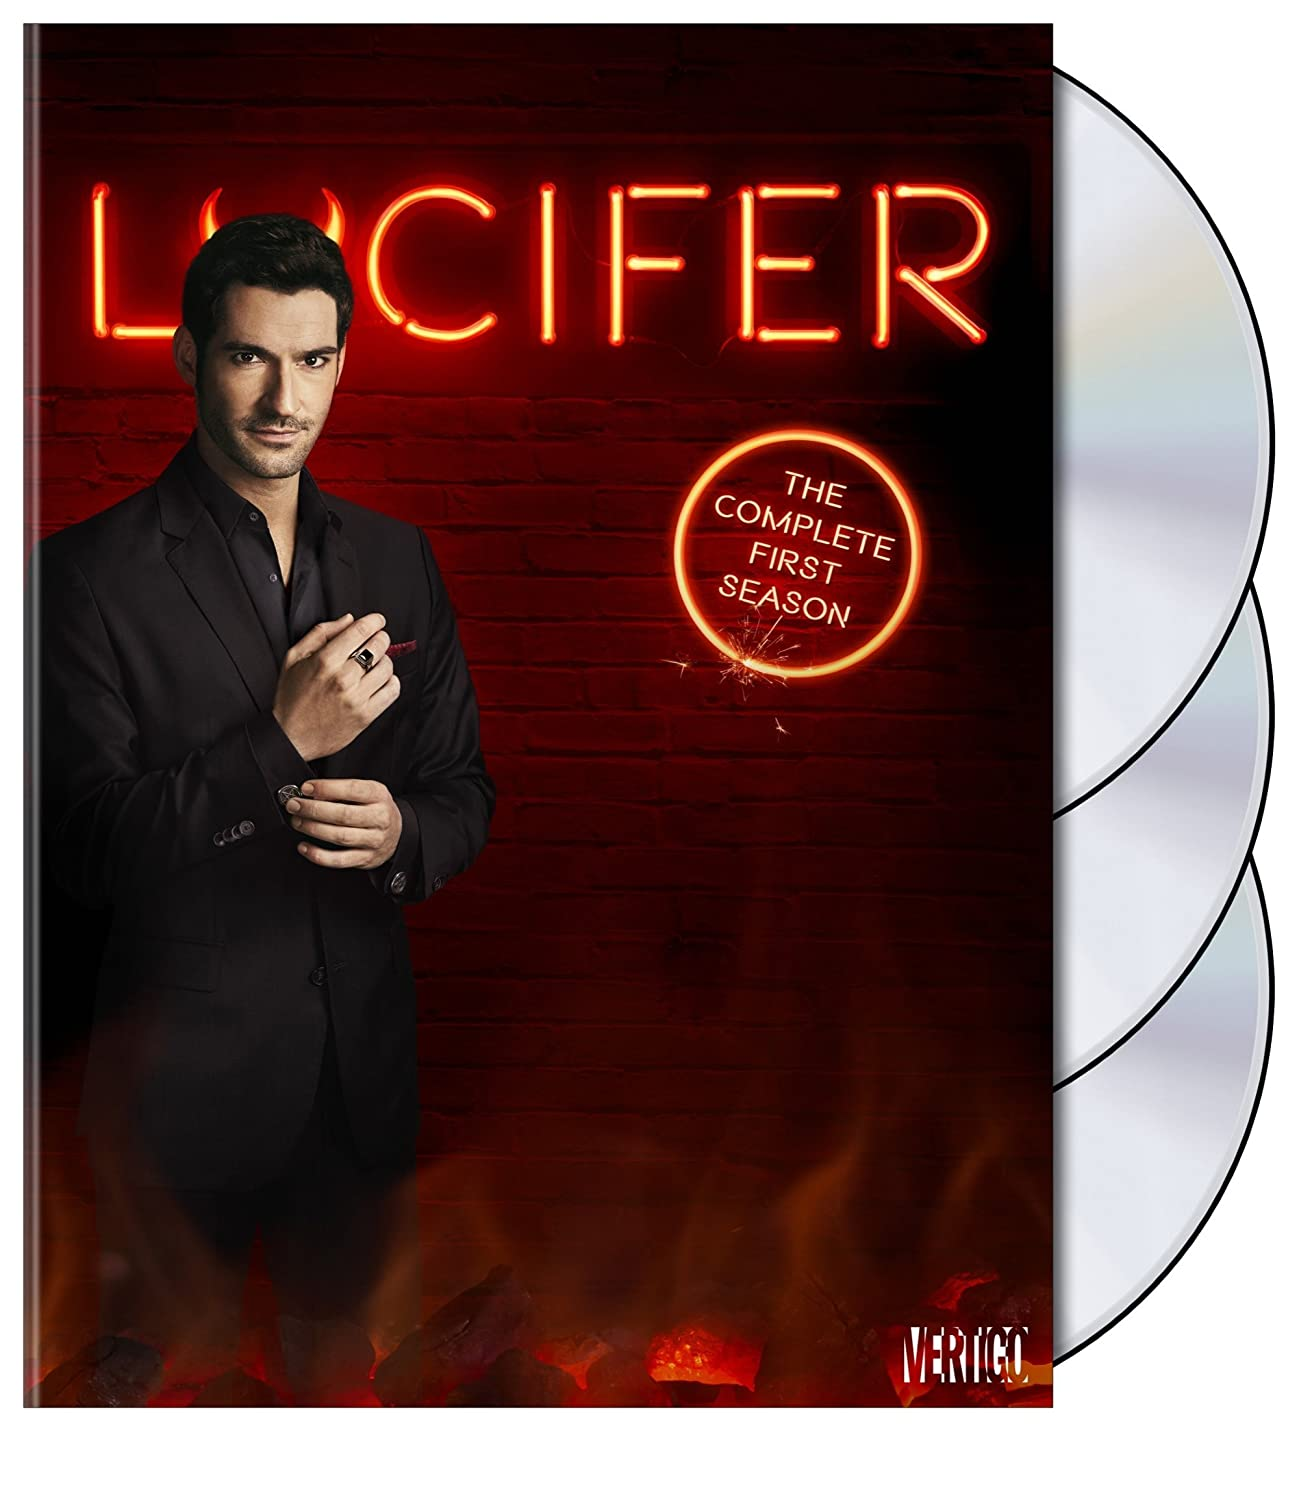 LUCIFER TV Show PHOTO Print POSTER Series Cast Tom Ellis Season Lauren German 02